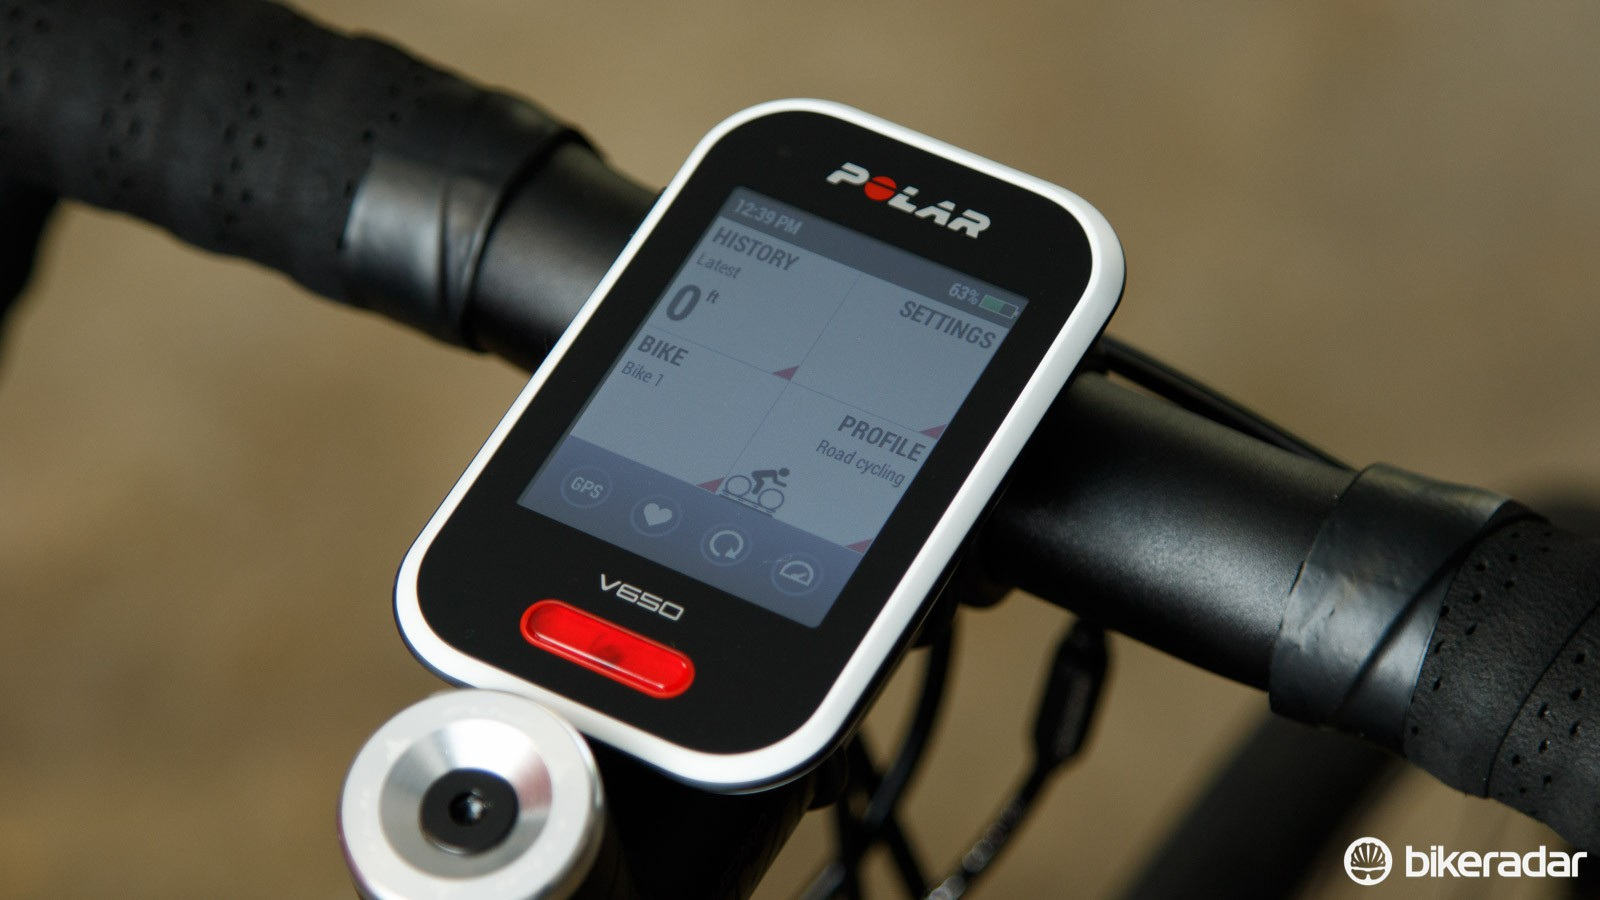 Polar's V650 features a high contrast 2.8in (7.1cm) colour touch screen